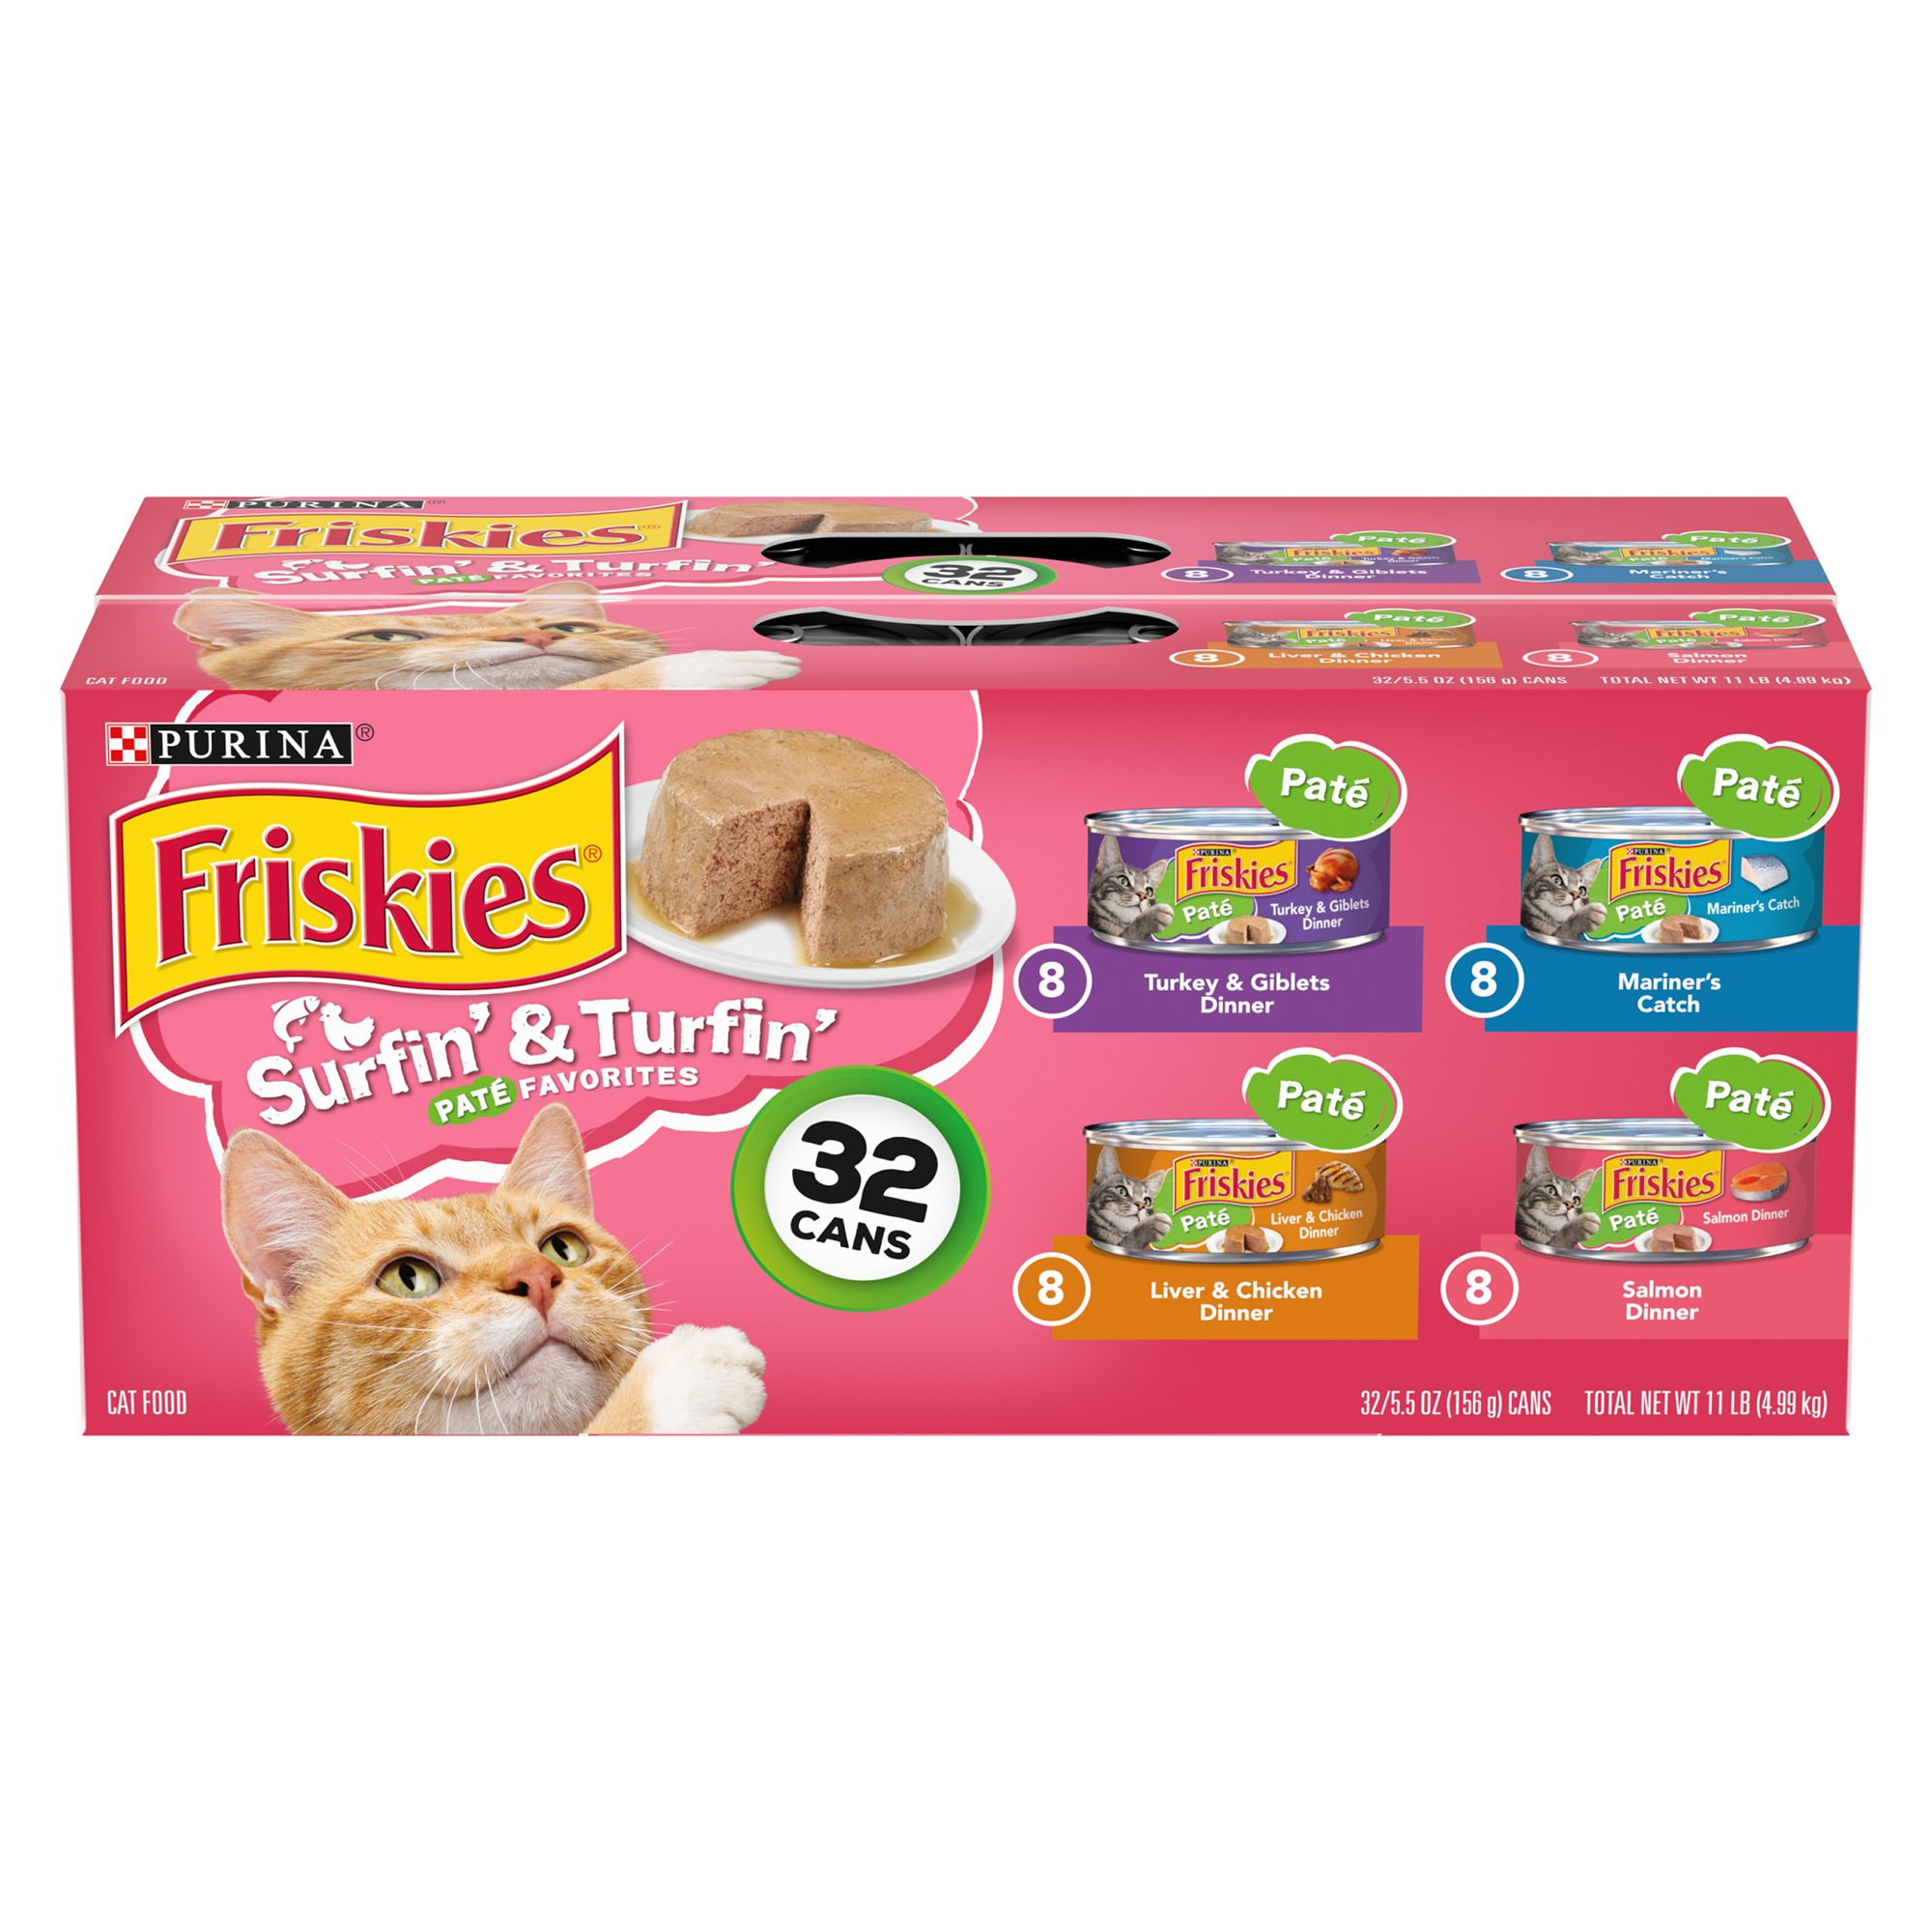 Purina Friskies Cat Food Surfin And Turfin Classic Pate 32 Can Value Pack Size 5.5 Oz